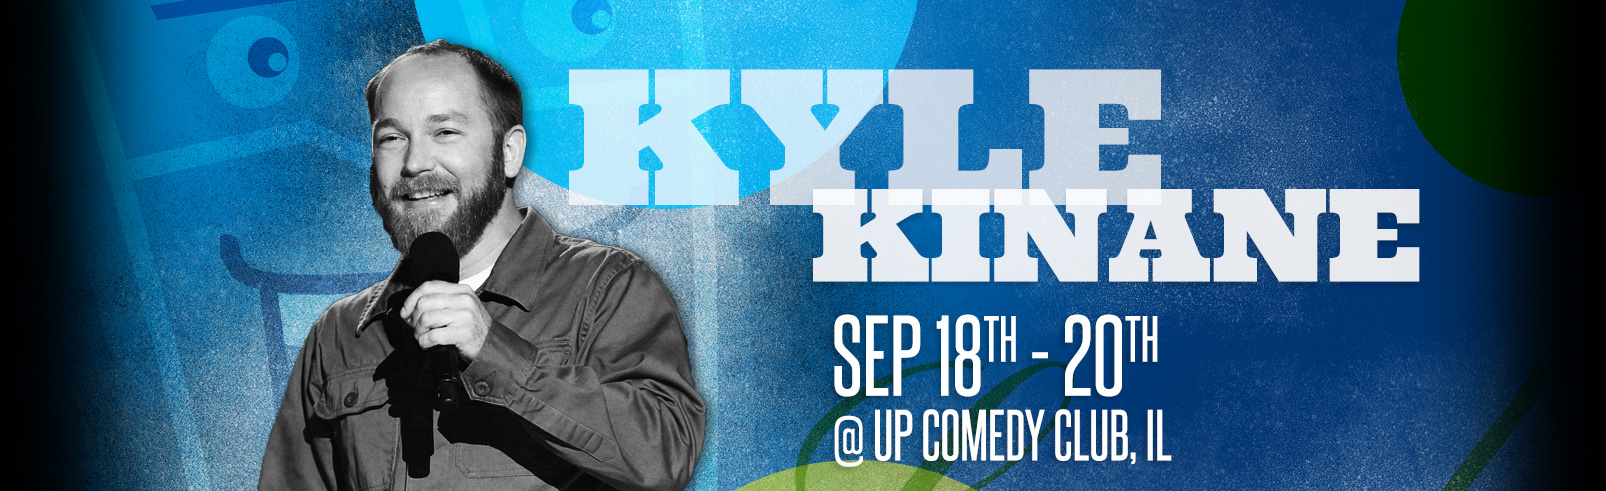 Kyle Kinane @ UP Comedy Club